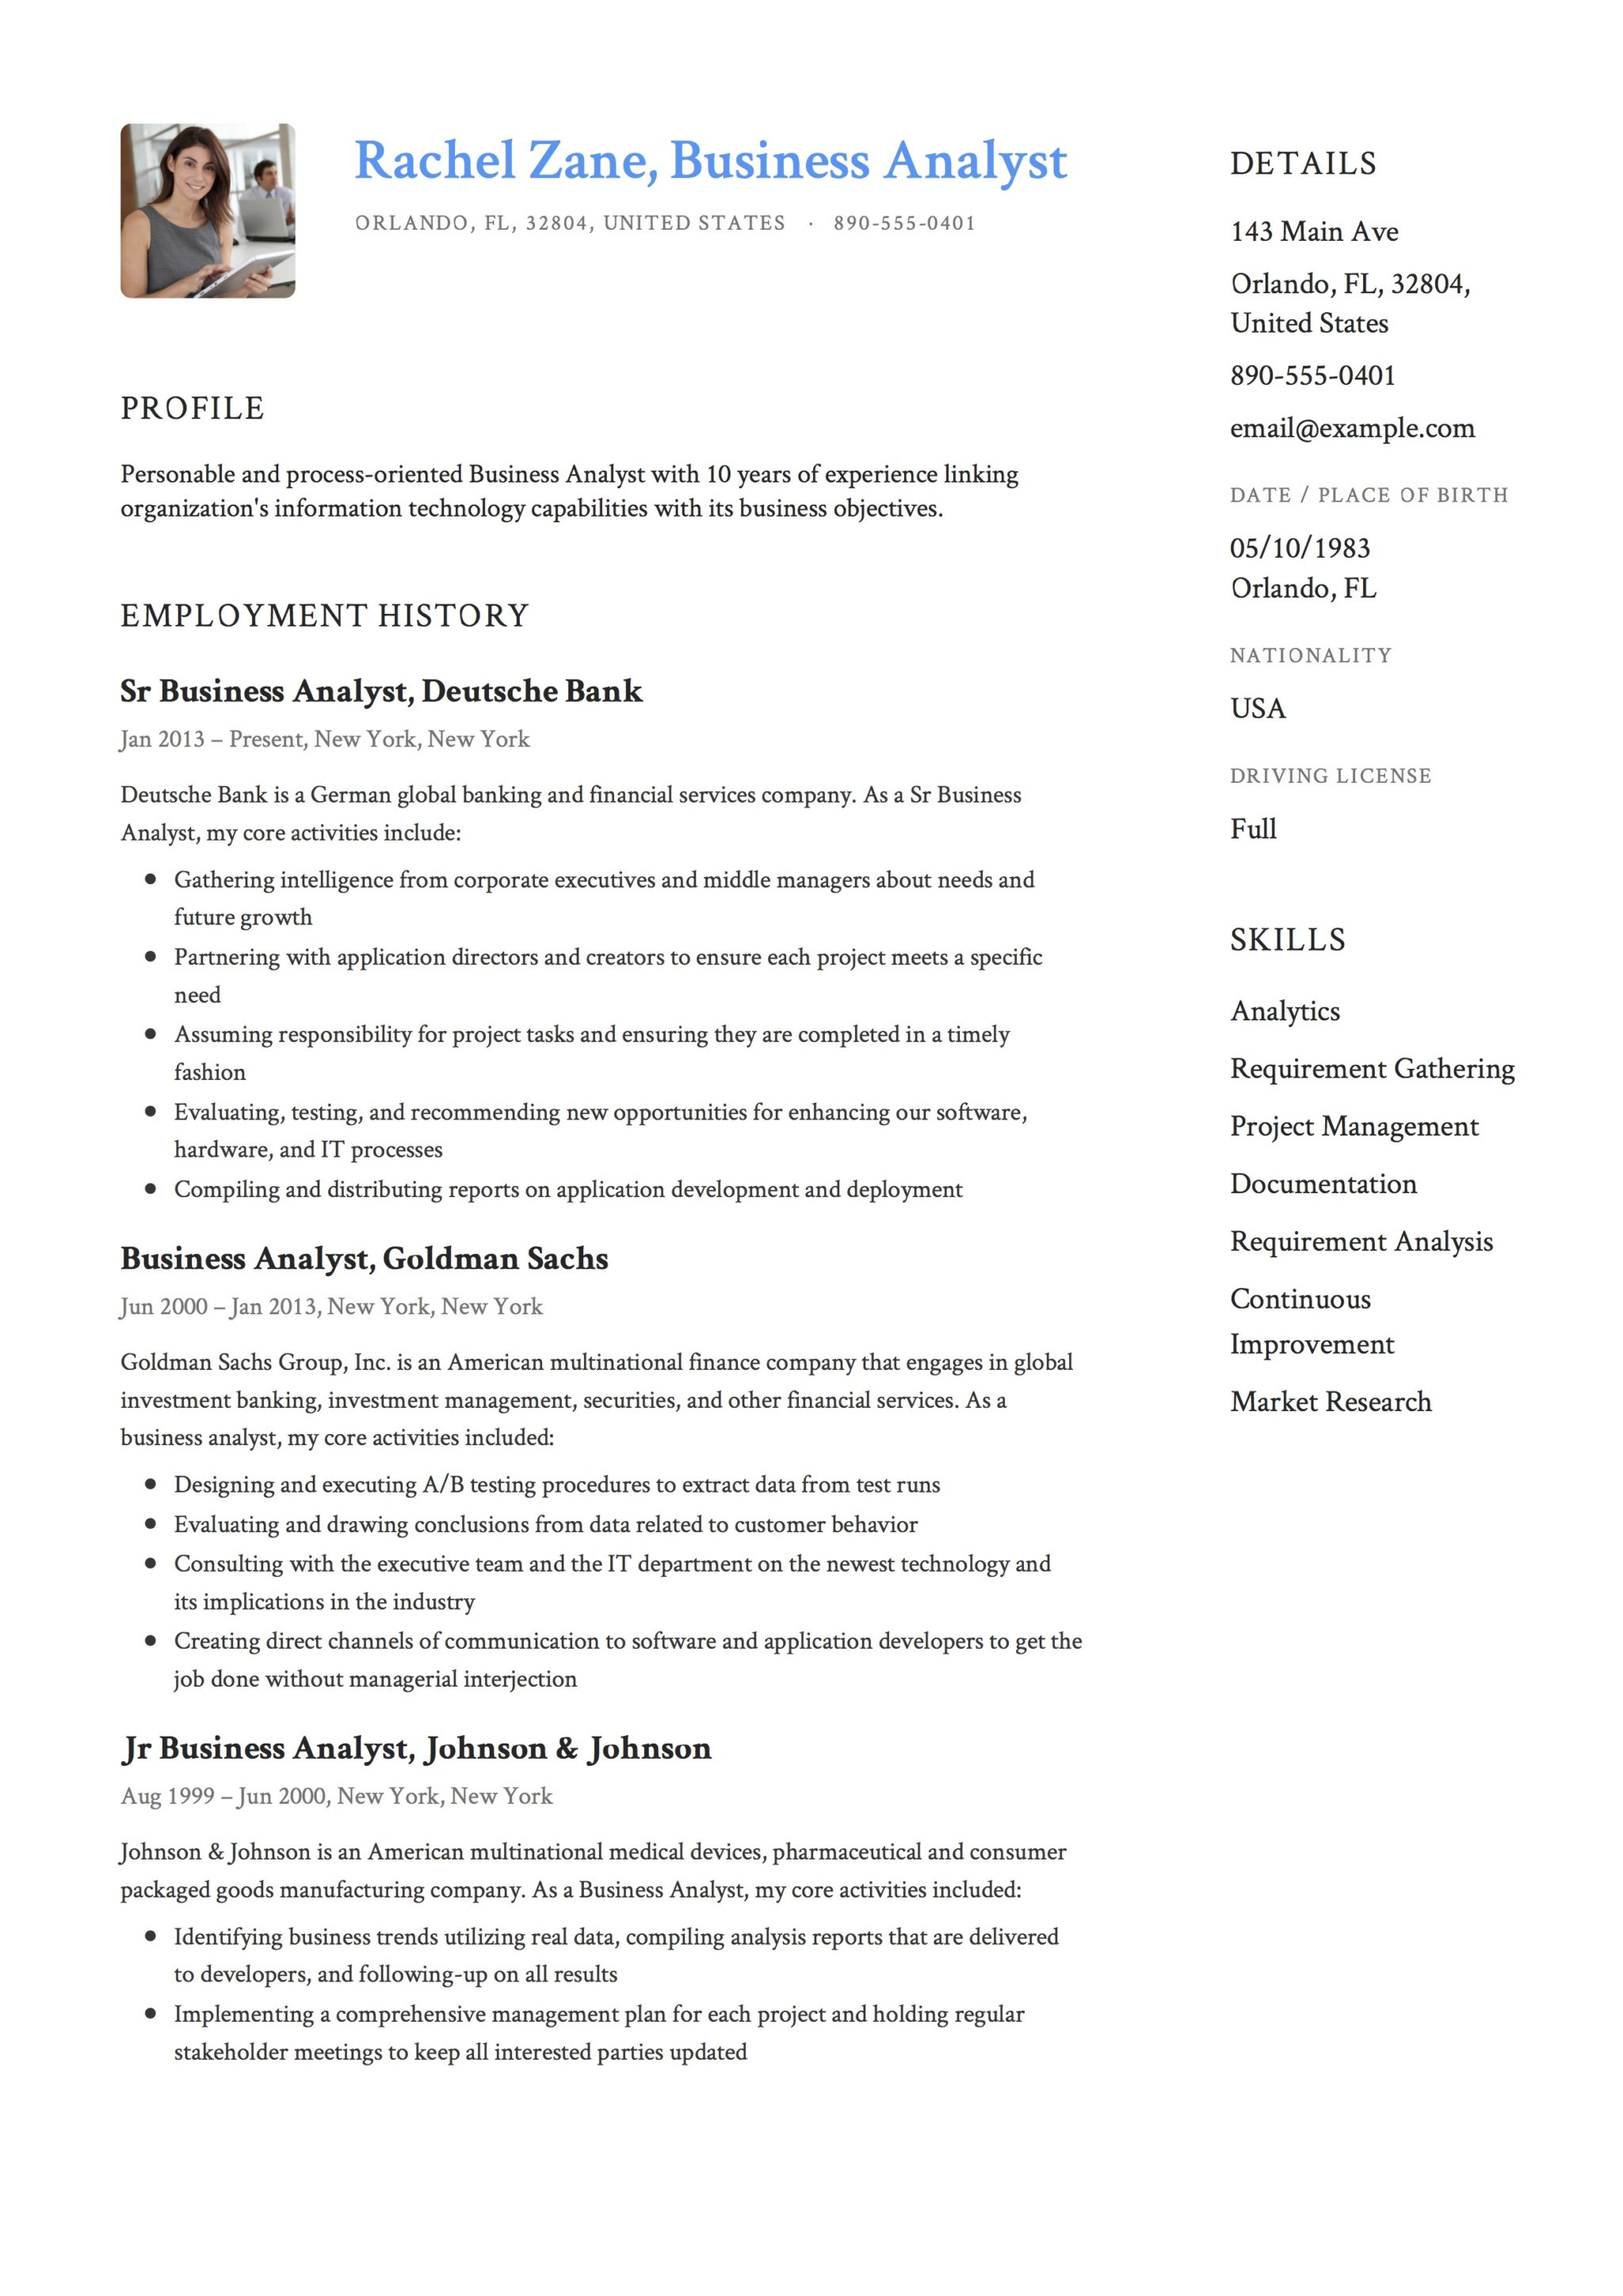 12 business analyst resume samples 2018 free downloads business analyst resume template wajeb Images